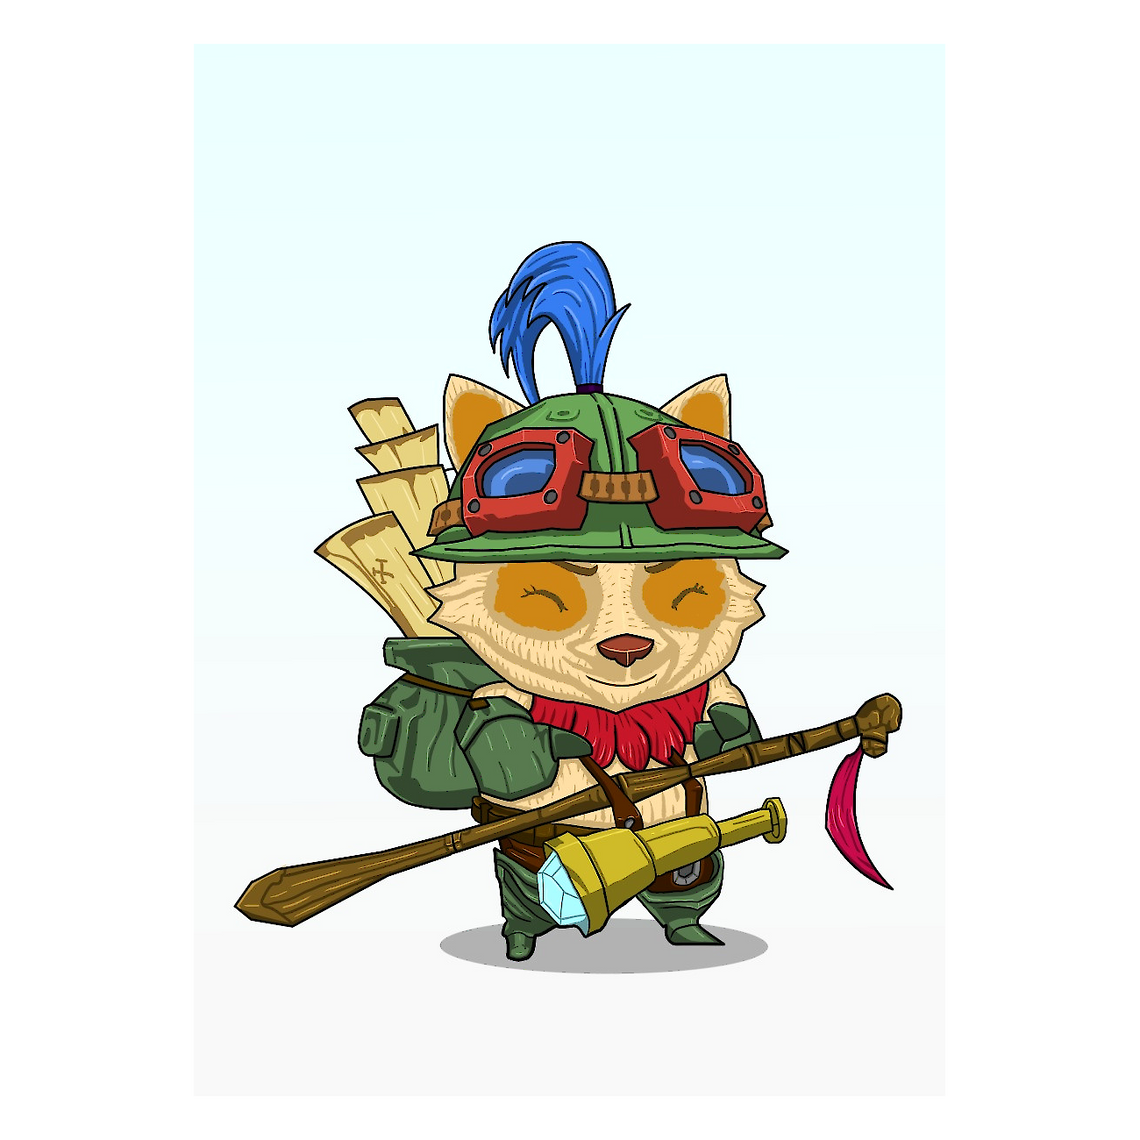 League of Legends Metallposter: Teemo